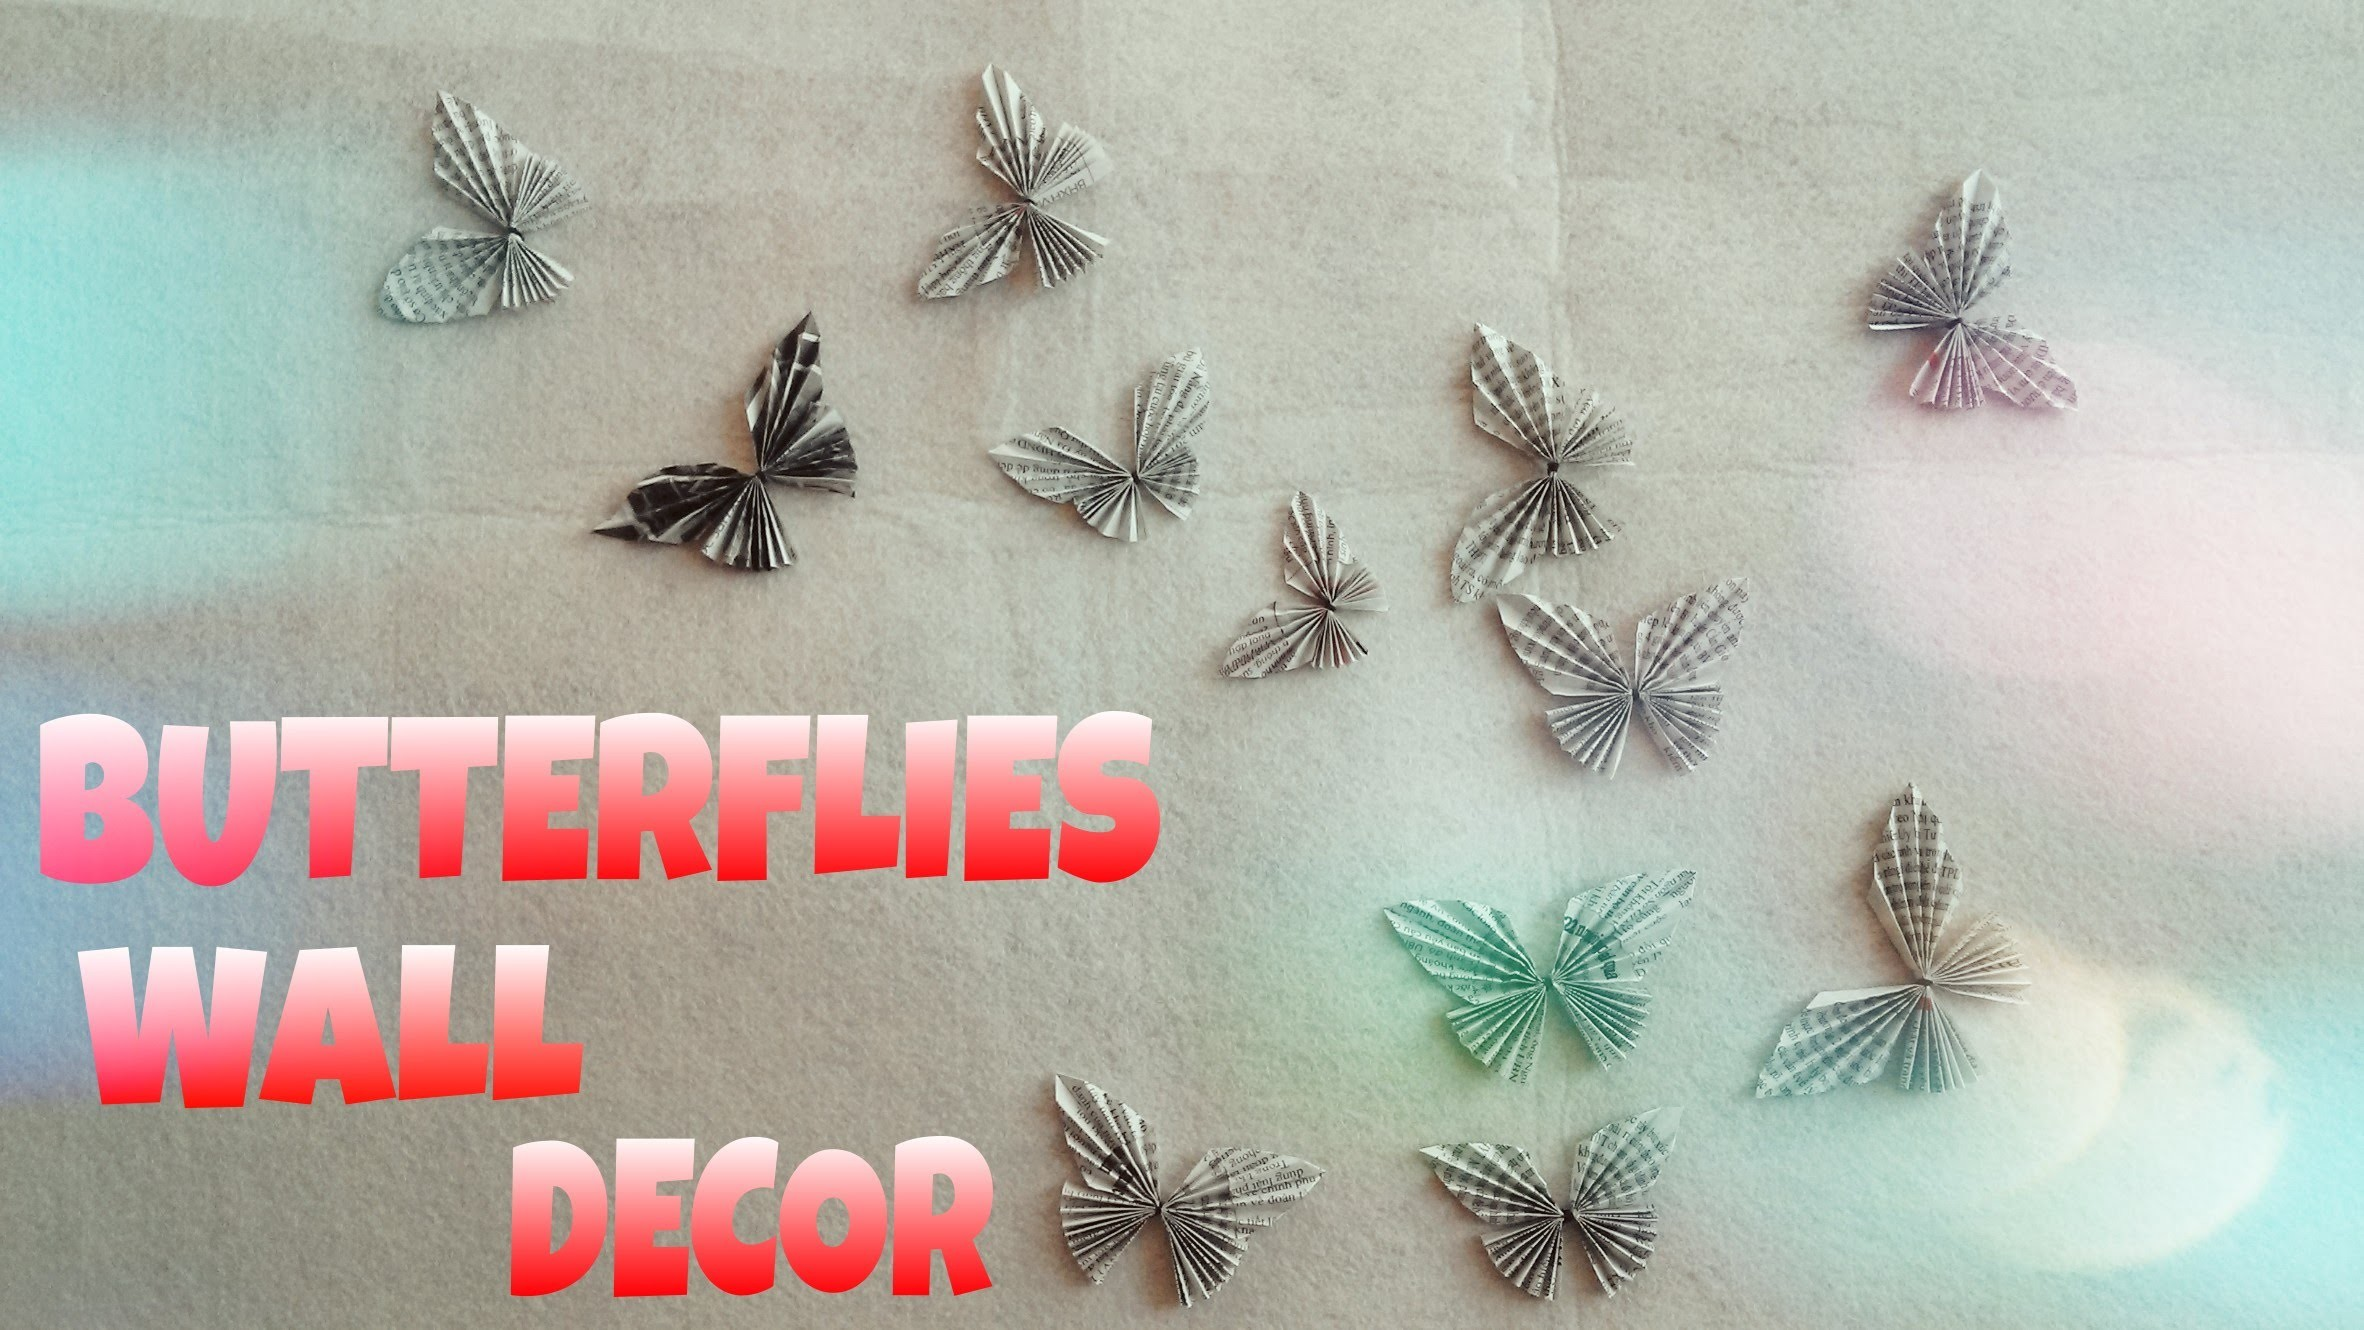 DIY Room Decor - Paper Butterflies Wall Decor (Very Easy)